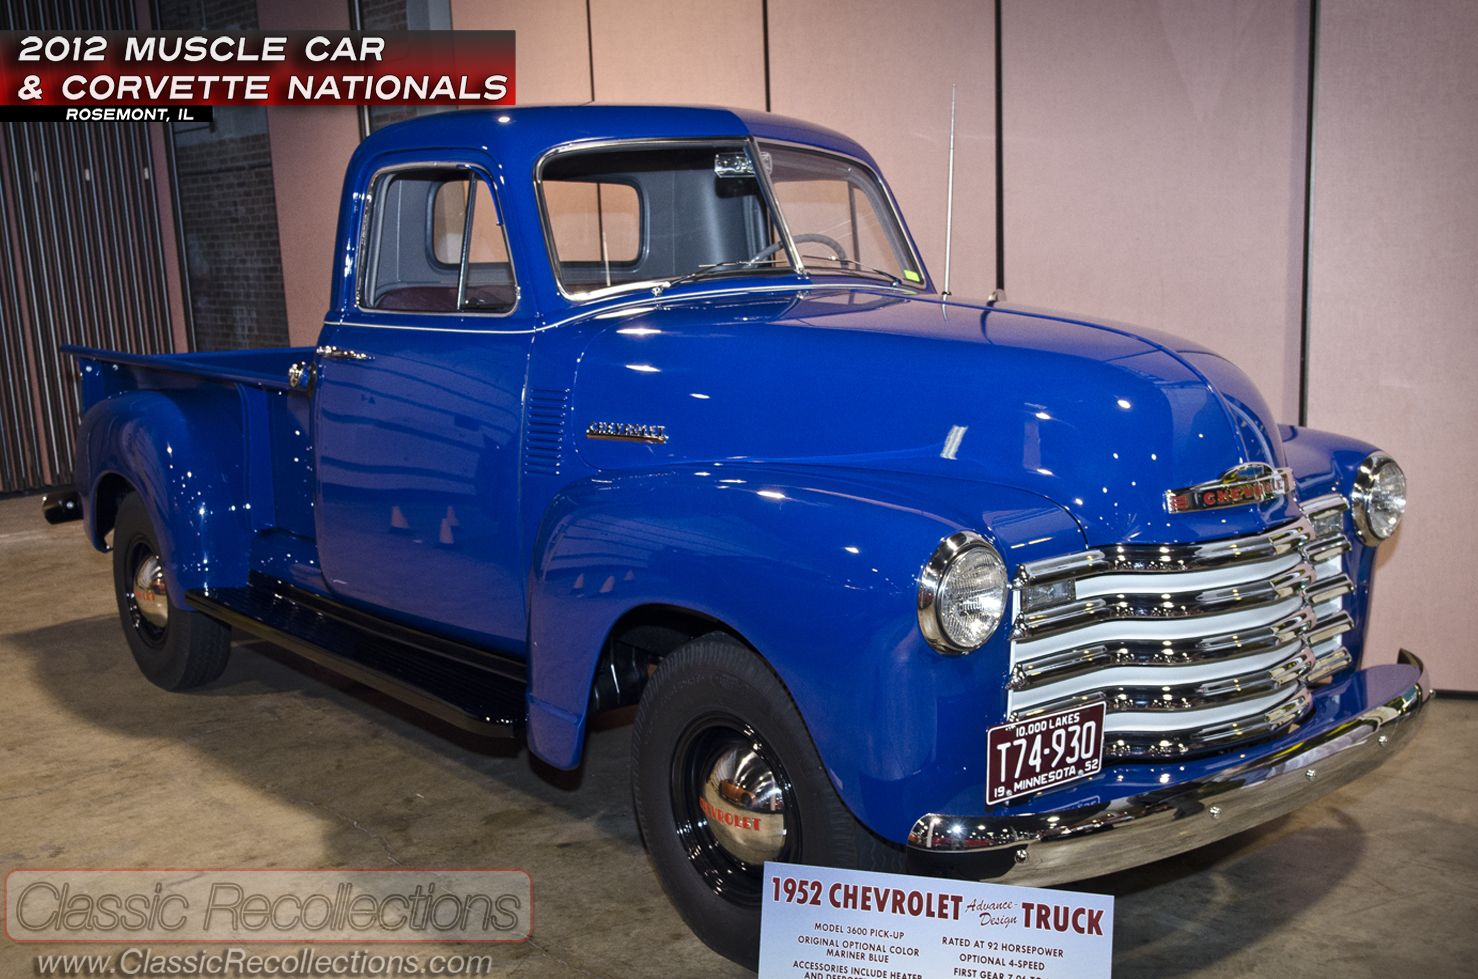 Mcacn 1952 chevrolet 3600 pickup truck classic cars pinterest mcacn 1952 chevrolet 3600 pickup truck publicscrutiny Gallery